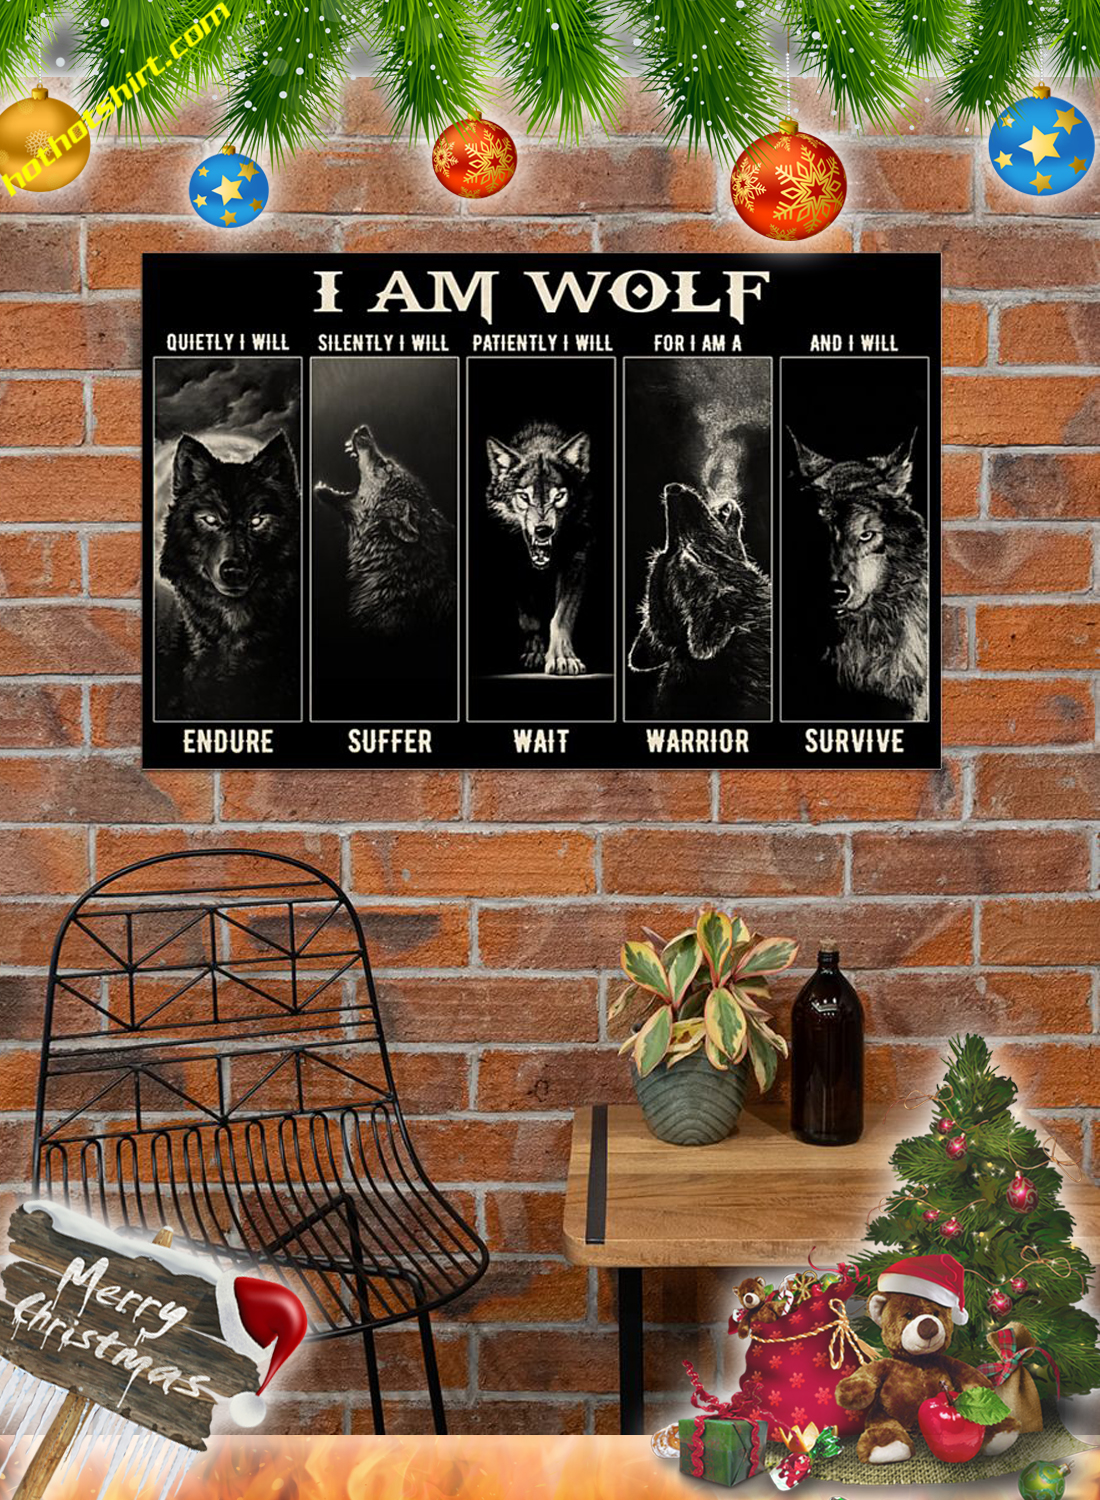 I am wolf poster 3